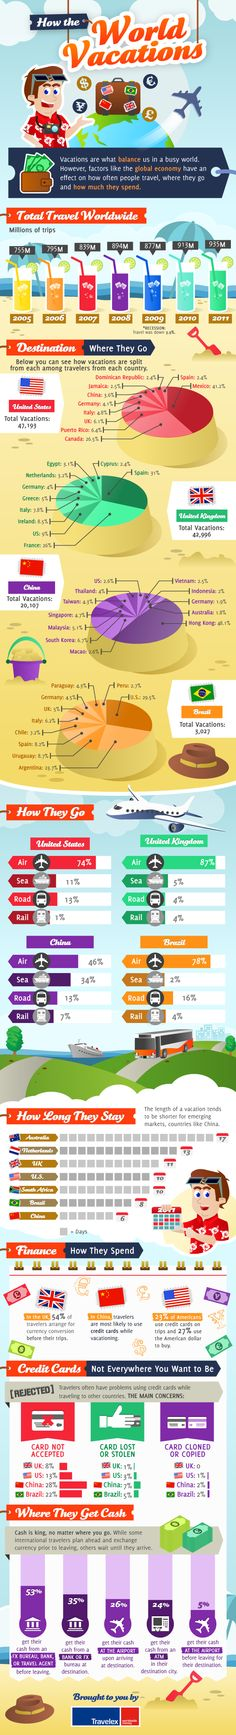 How the world Vacations | Infographic